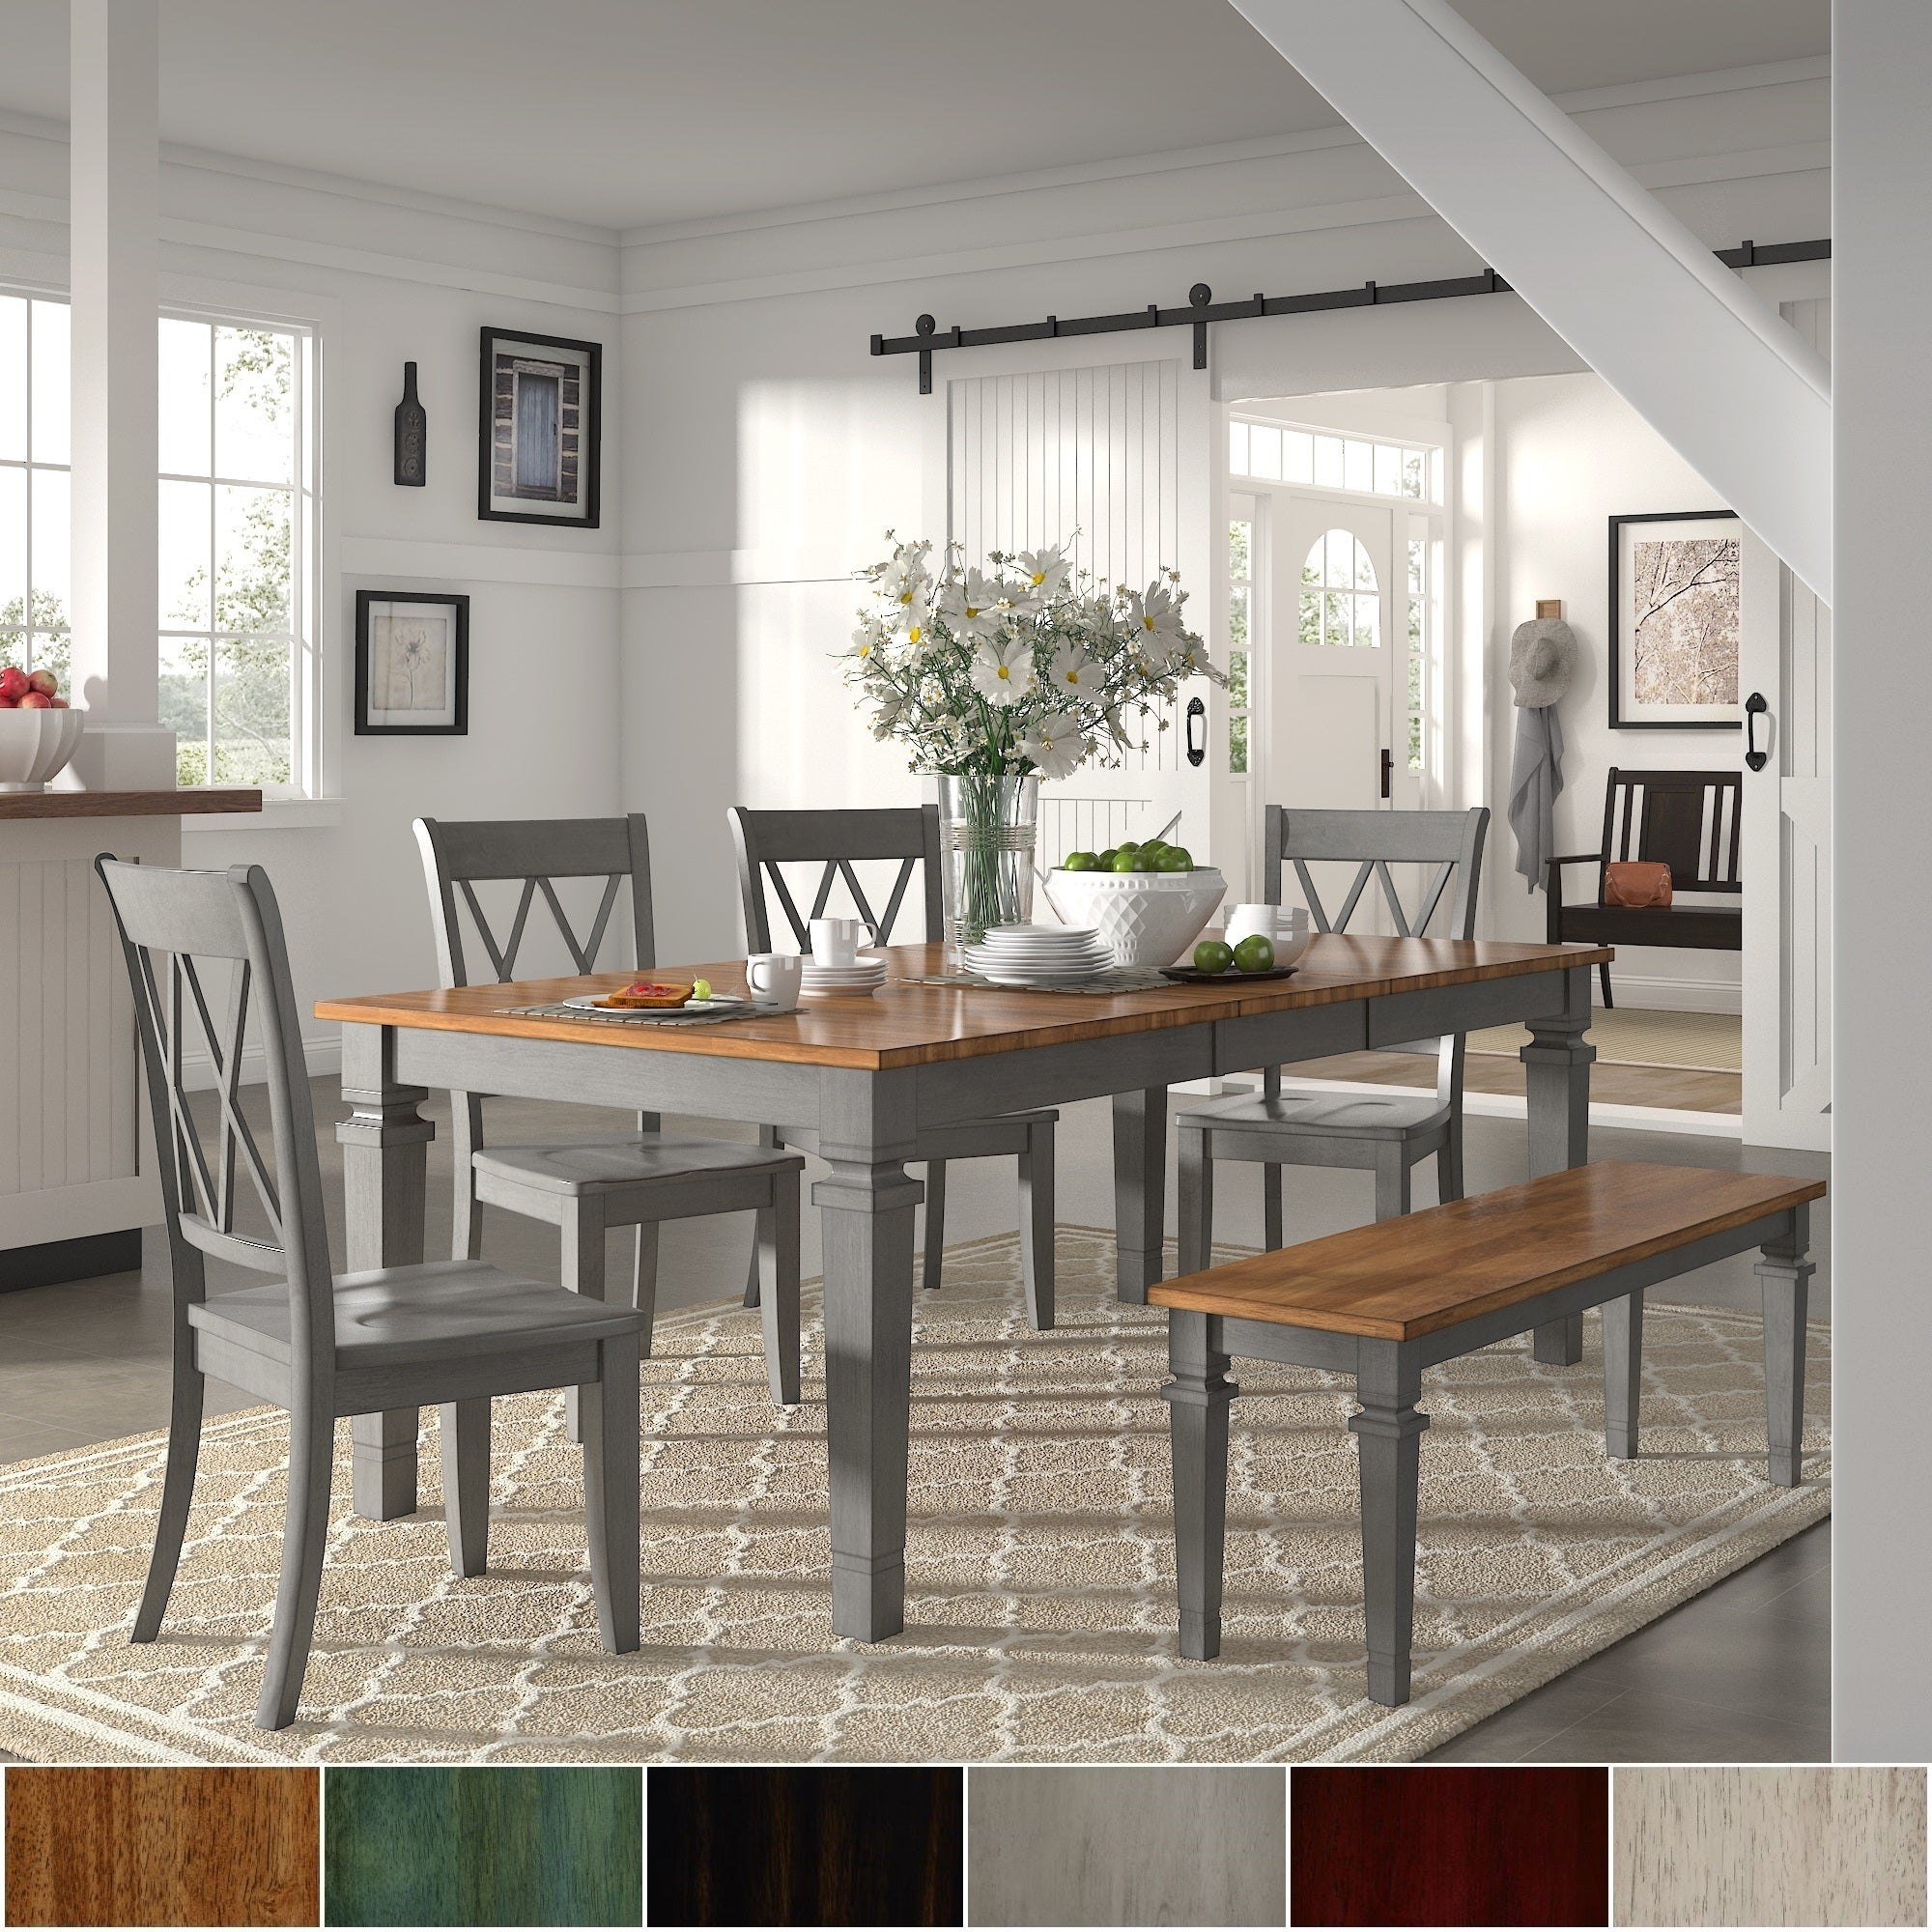 Elena Antique Grey Extendable Rectangular Dining Set Double X Back By Inspire Q Clic